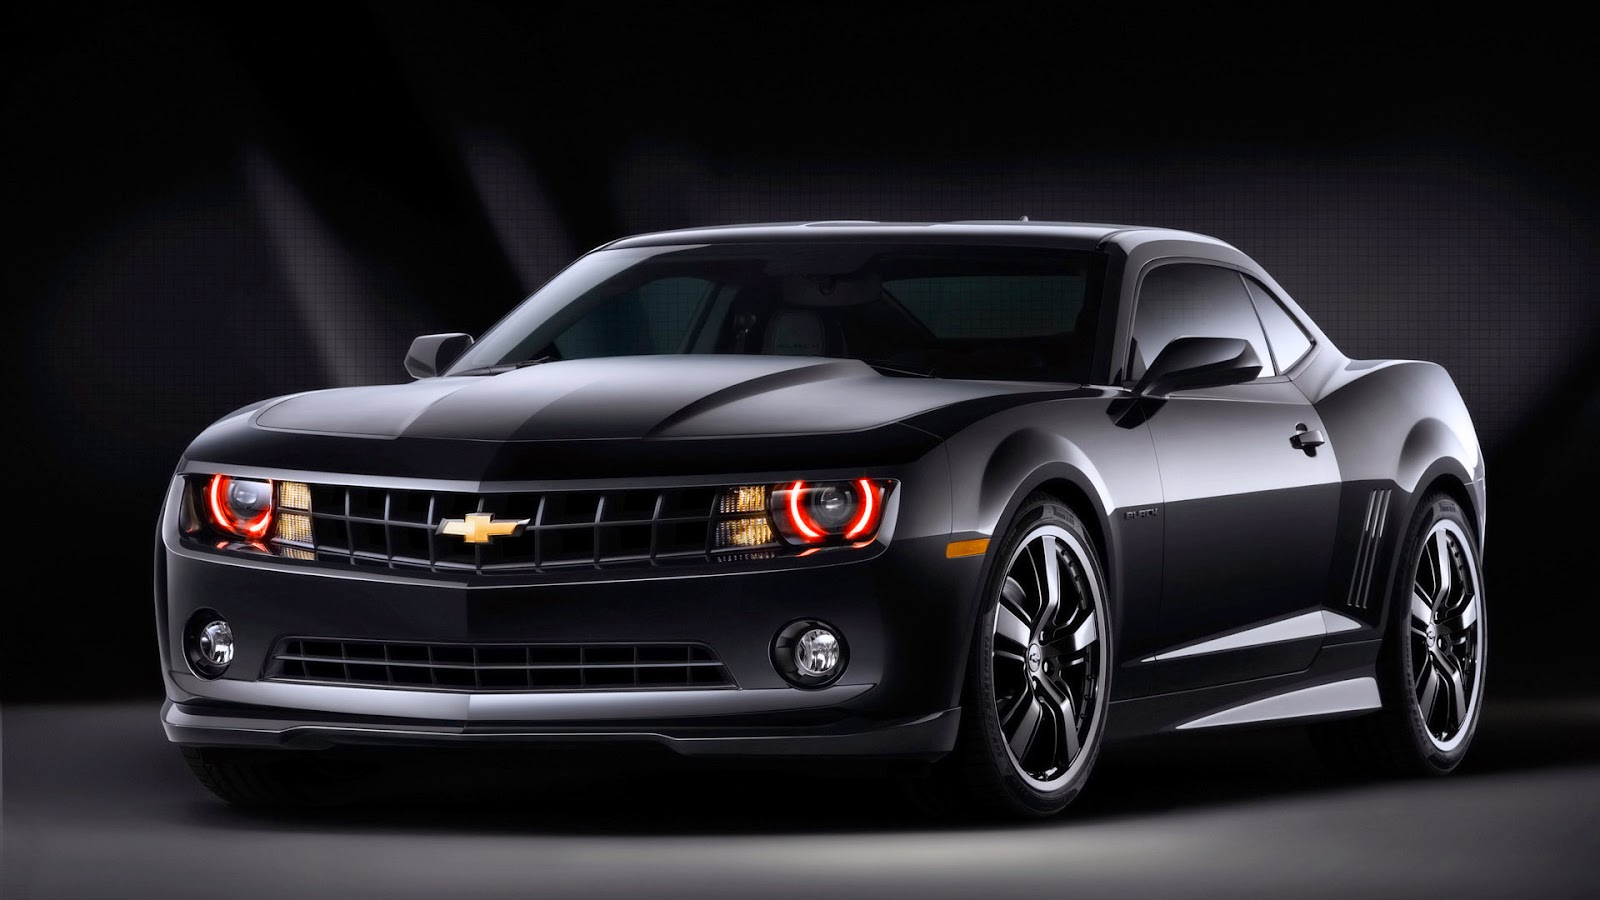 Black Siver Beutifull Car HD Wallpaper